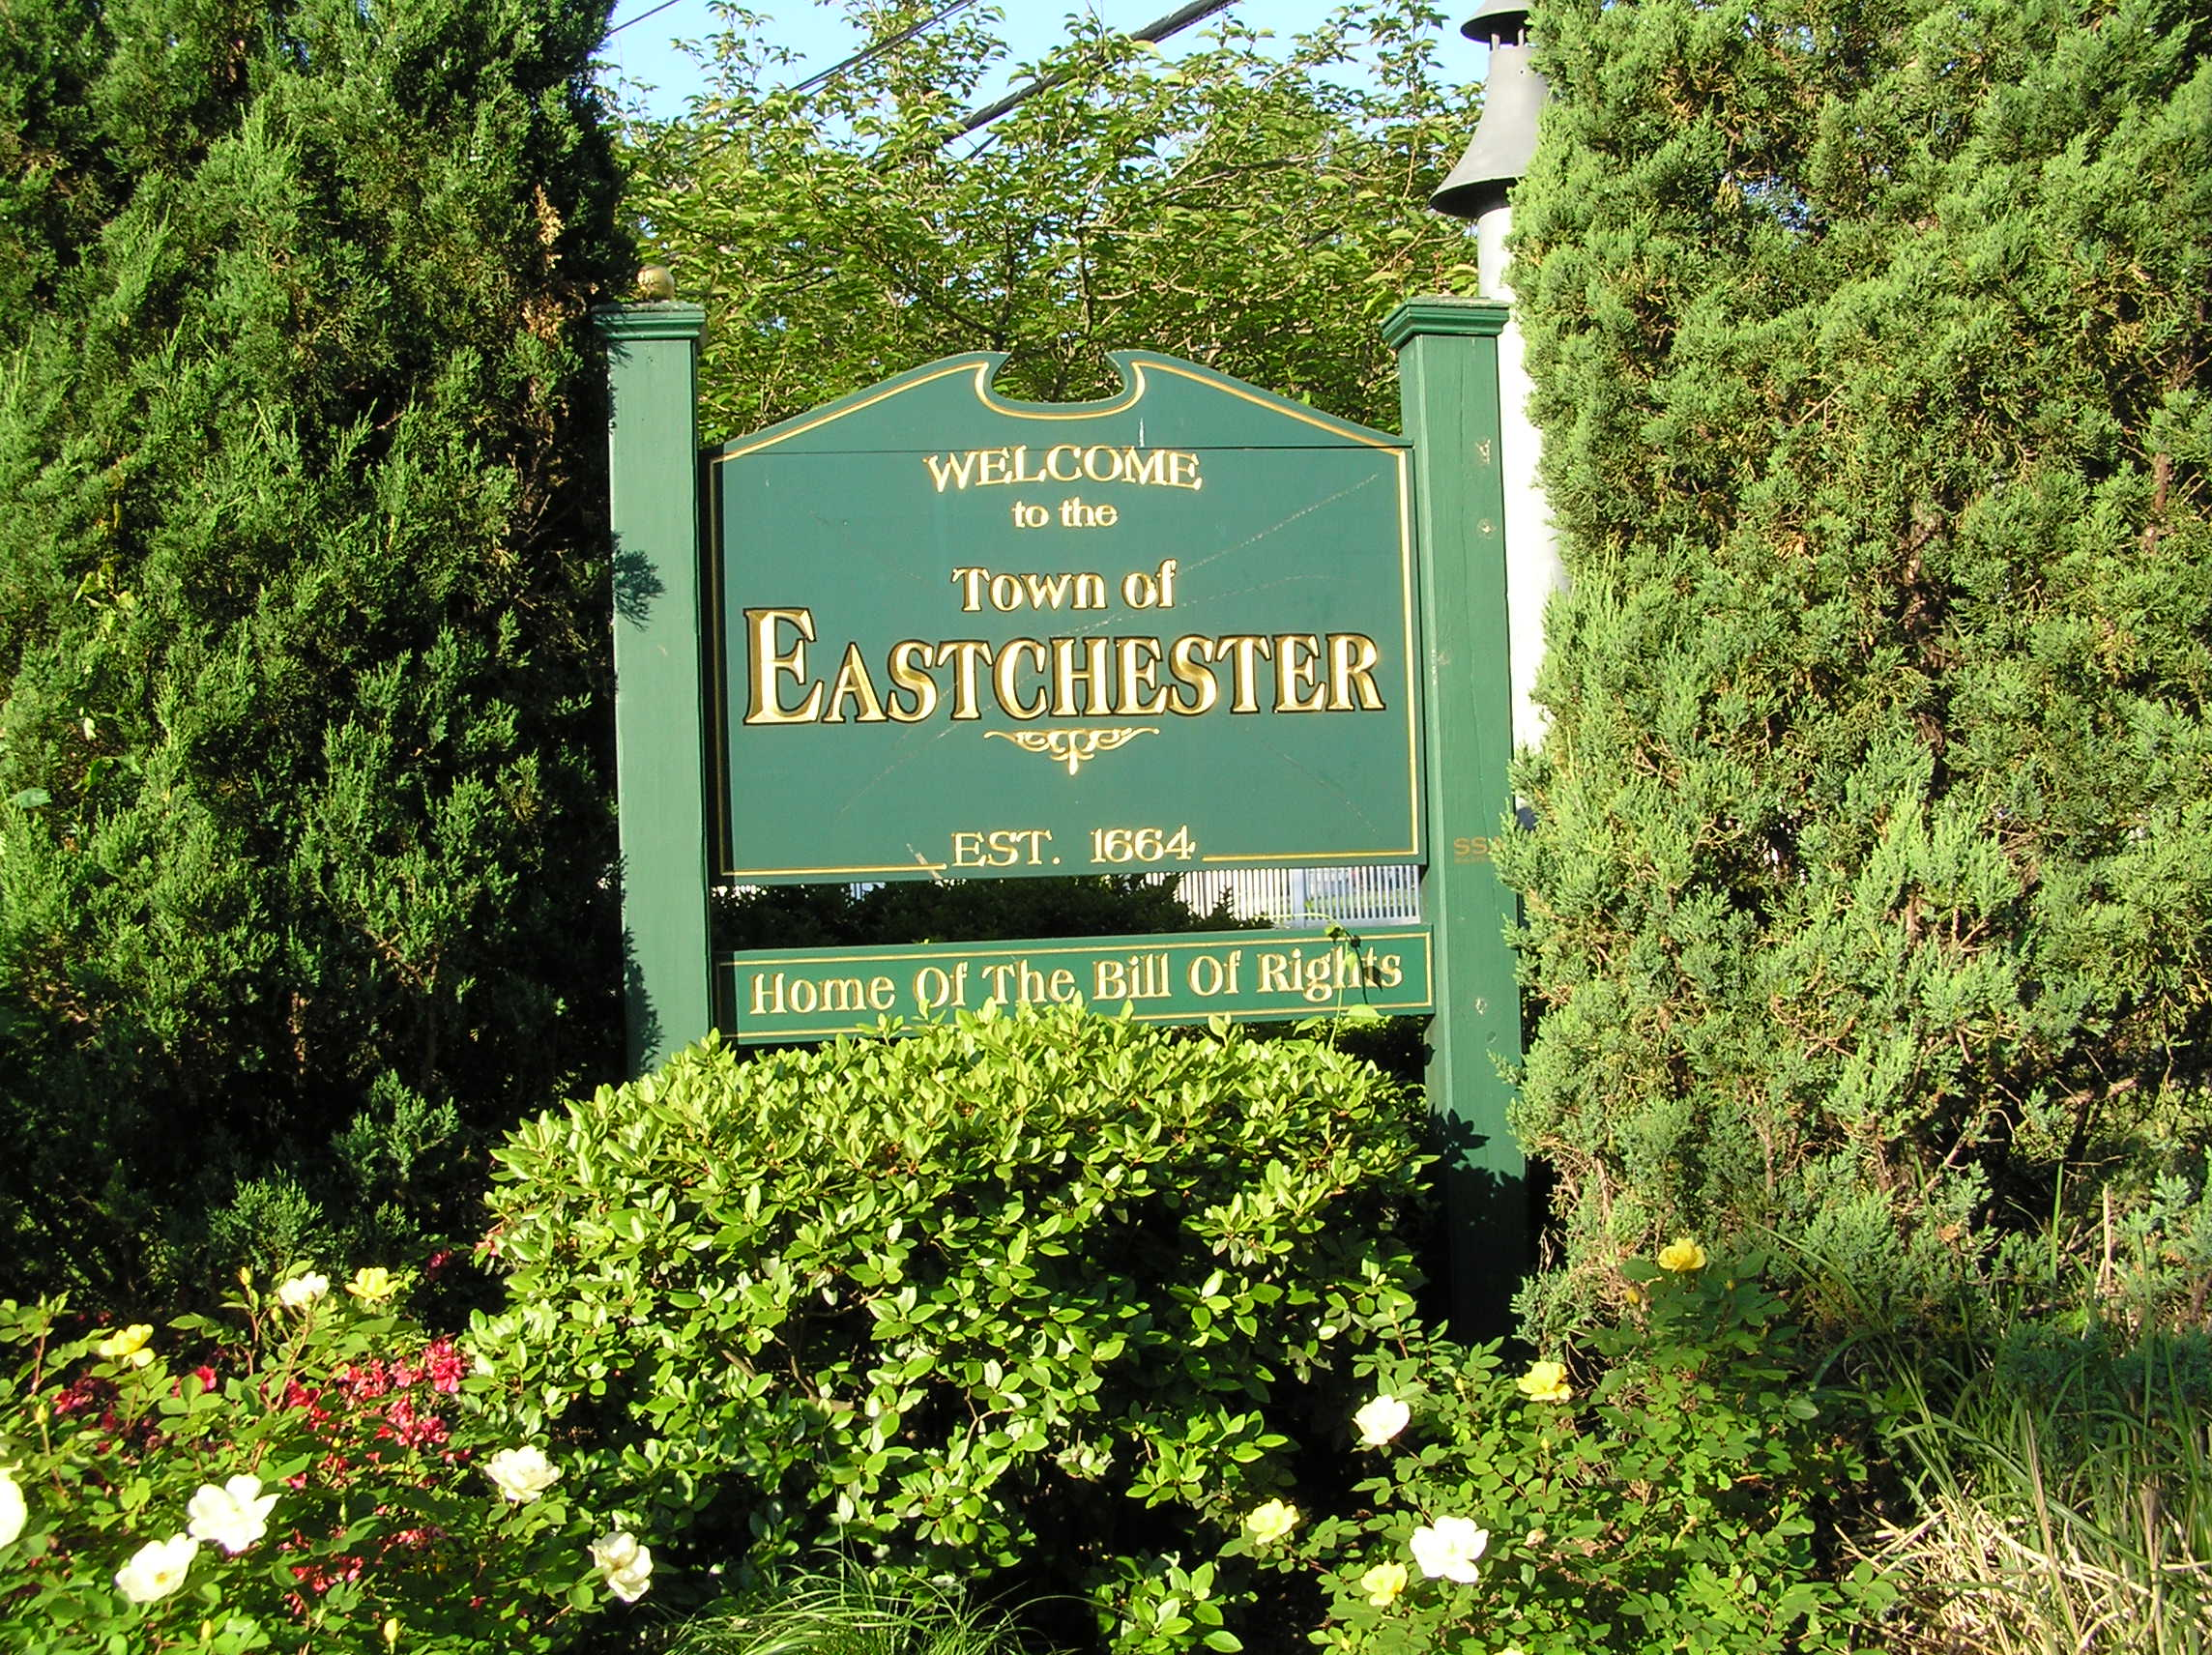 File:Town of Eastchester Welcome Sign 2010.JPG - Wikimedia Commonseastchester town